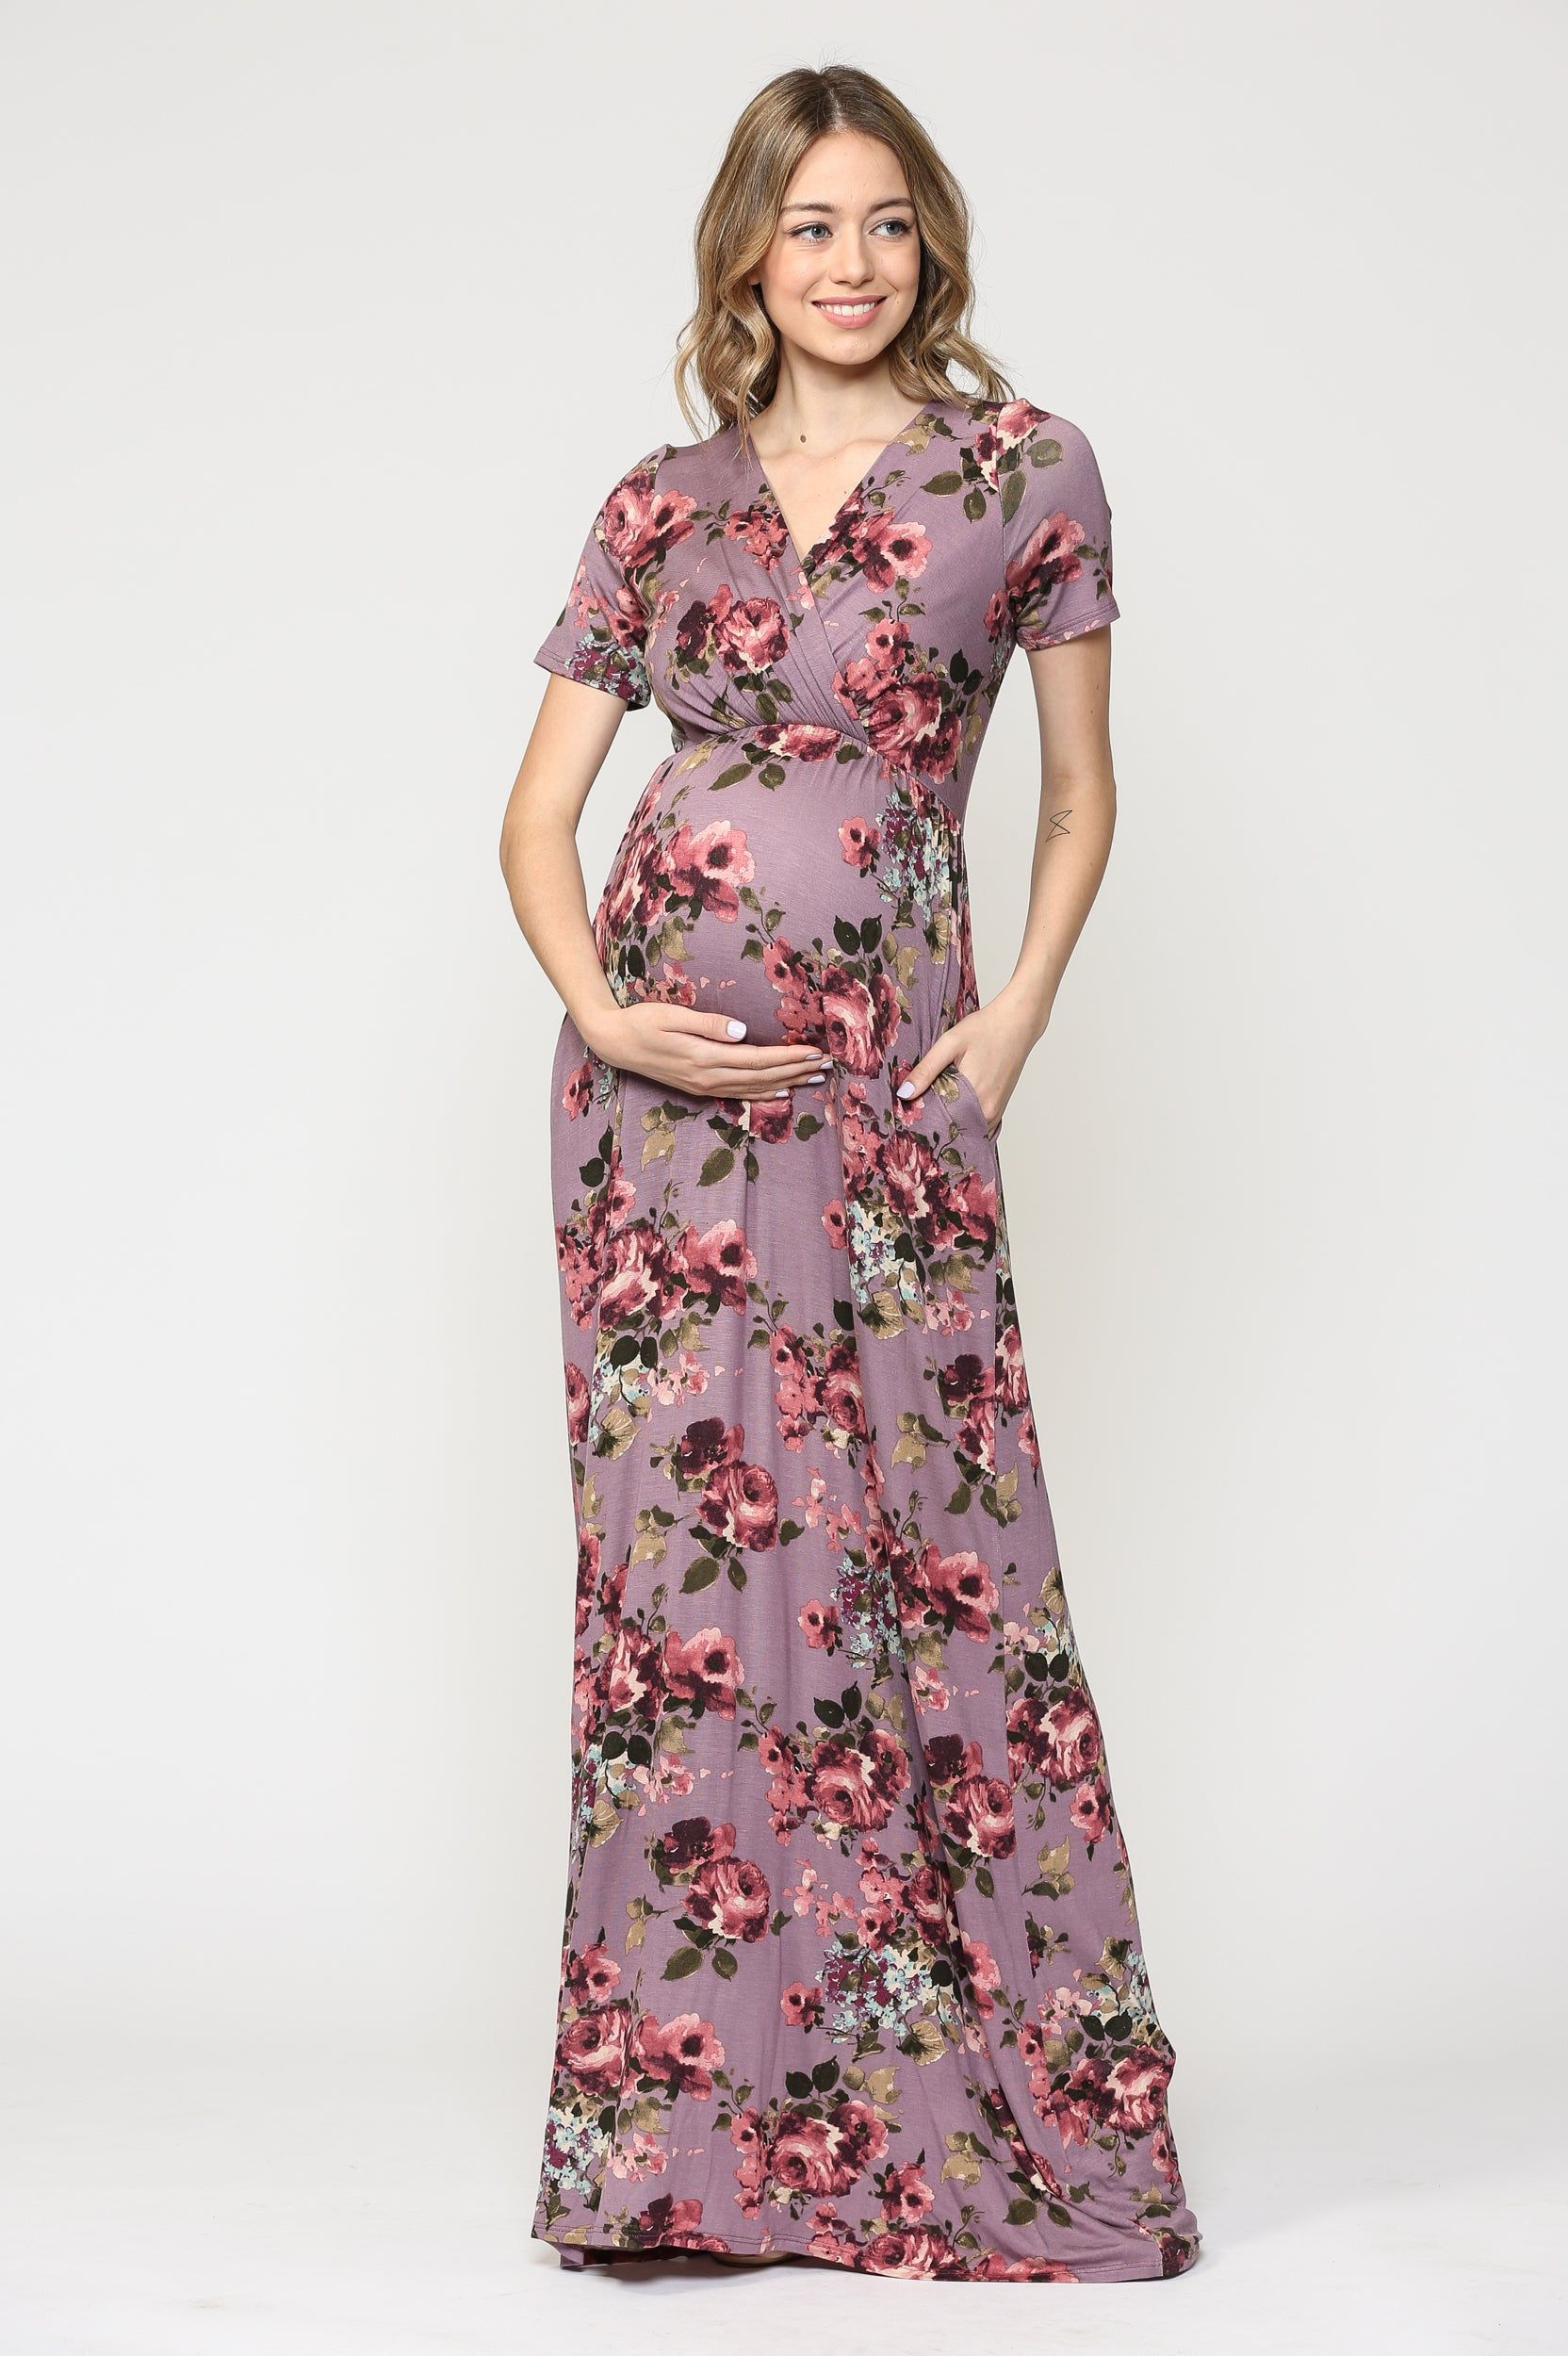 Floral Short Sleeve Pocket Maternity/Nursing Maxi Dress